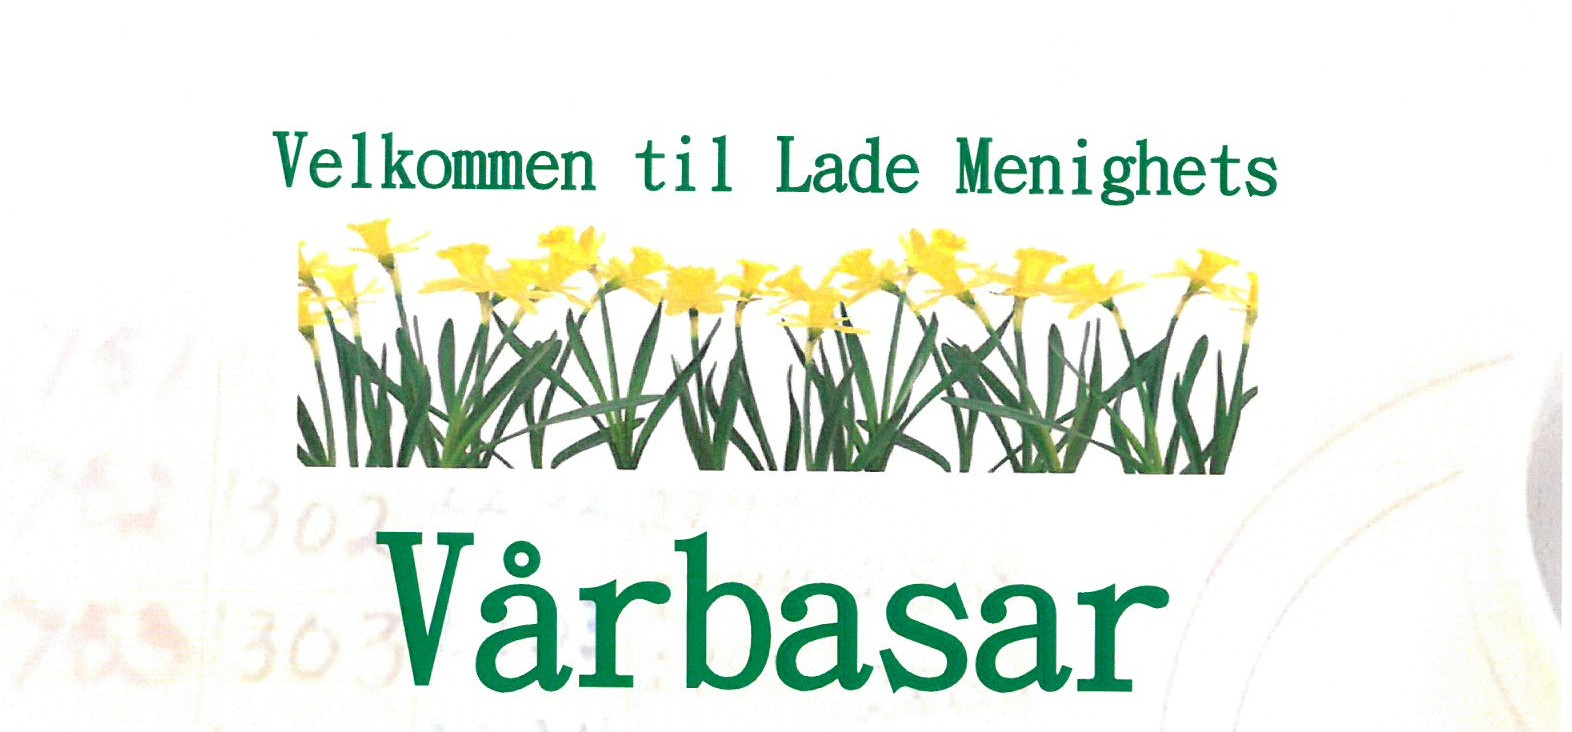 Vårbasar 6. april